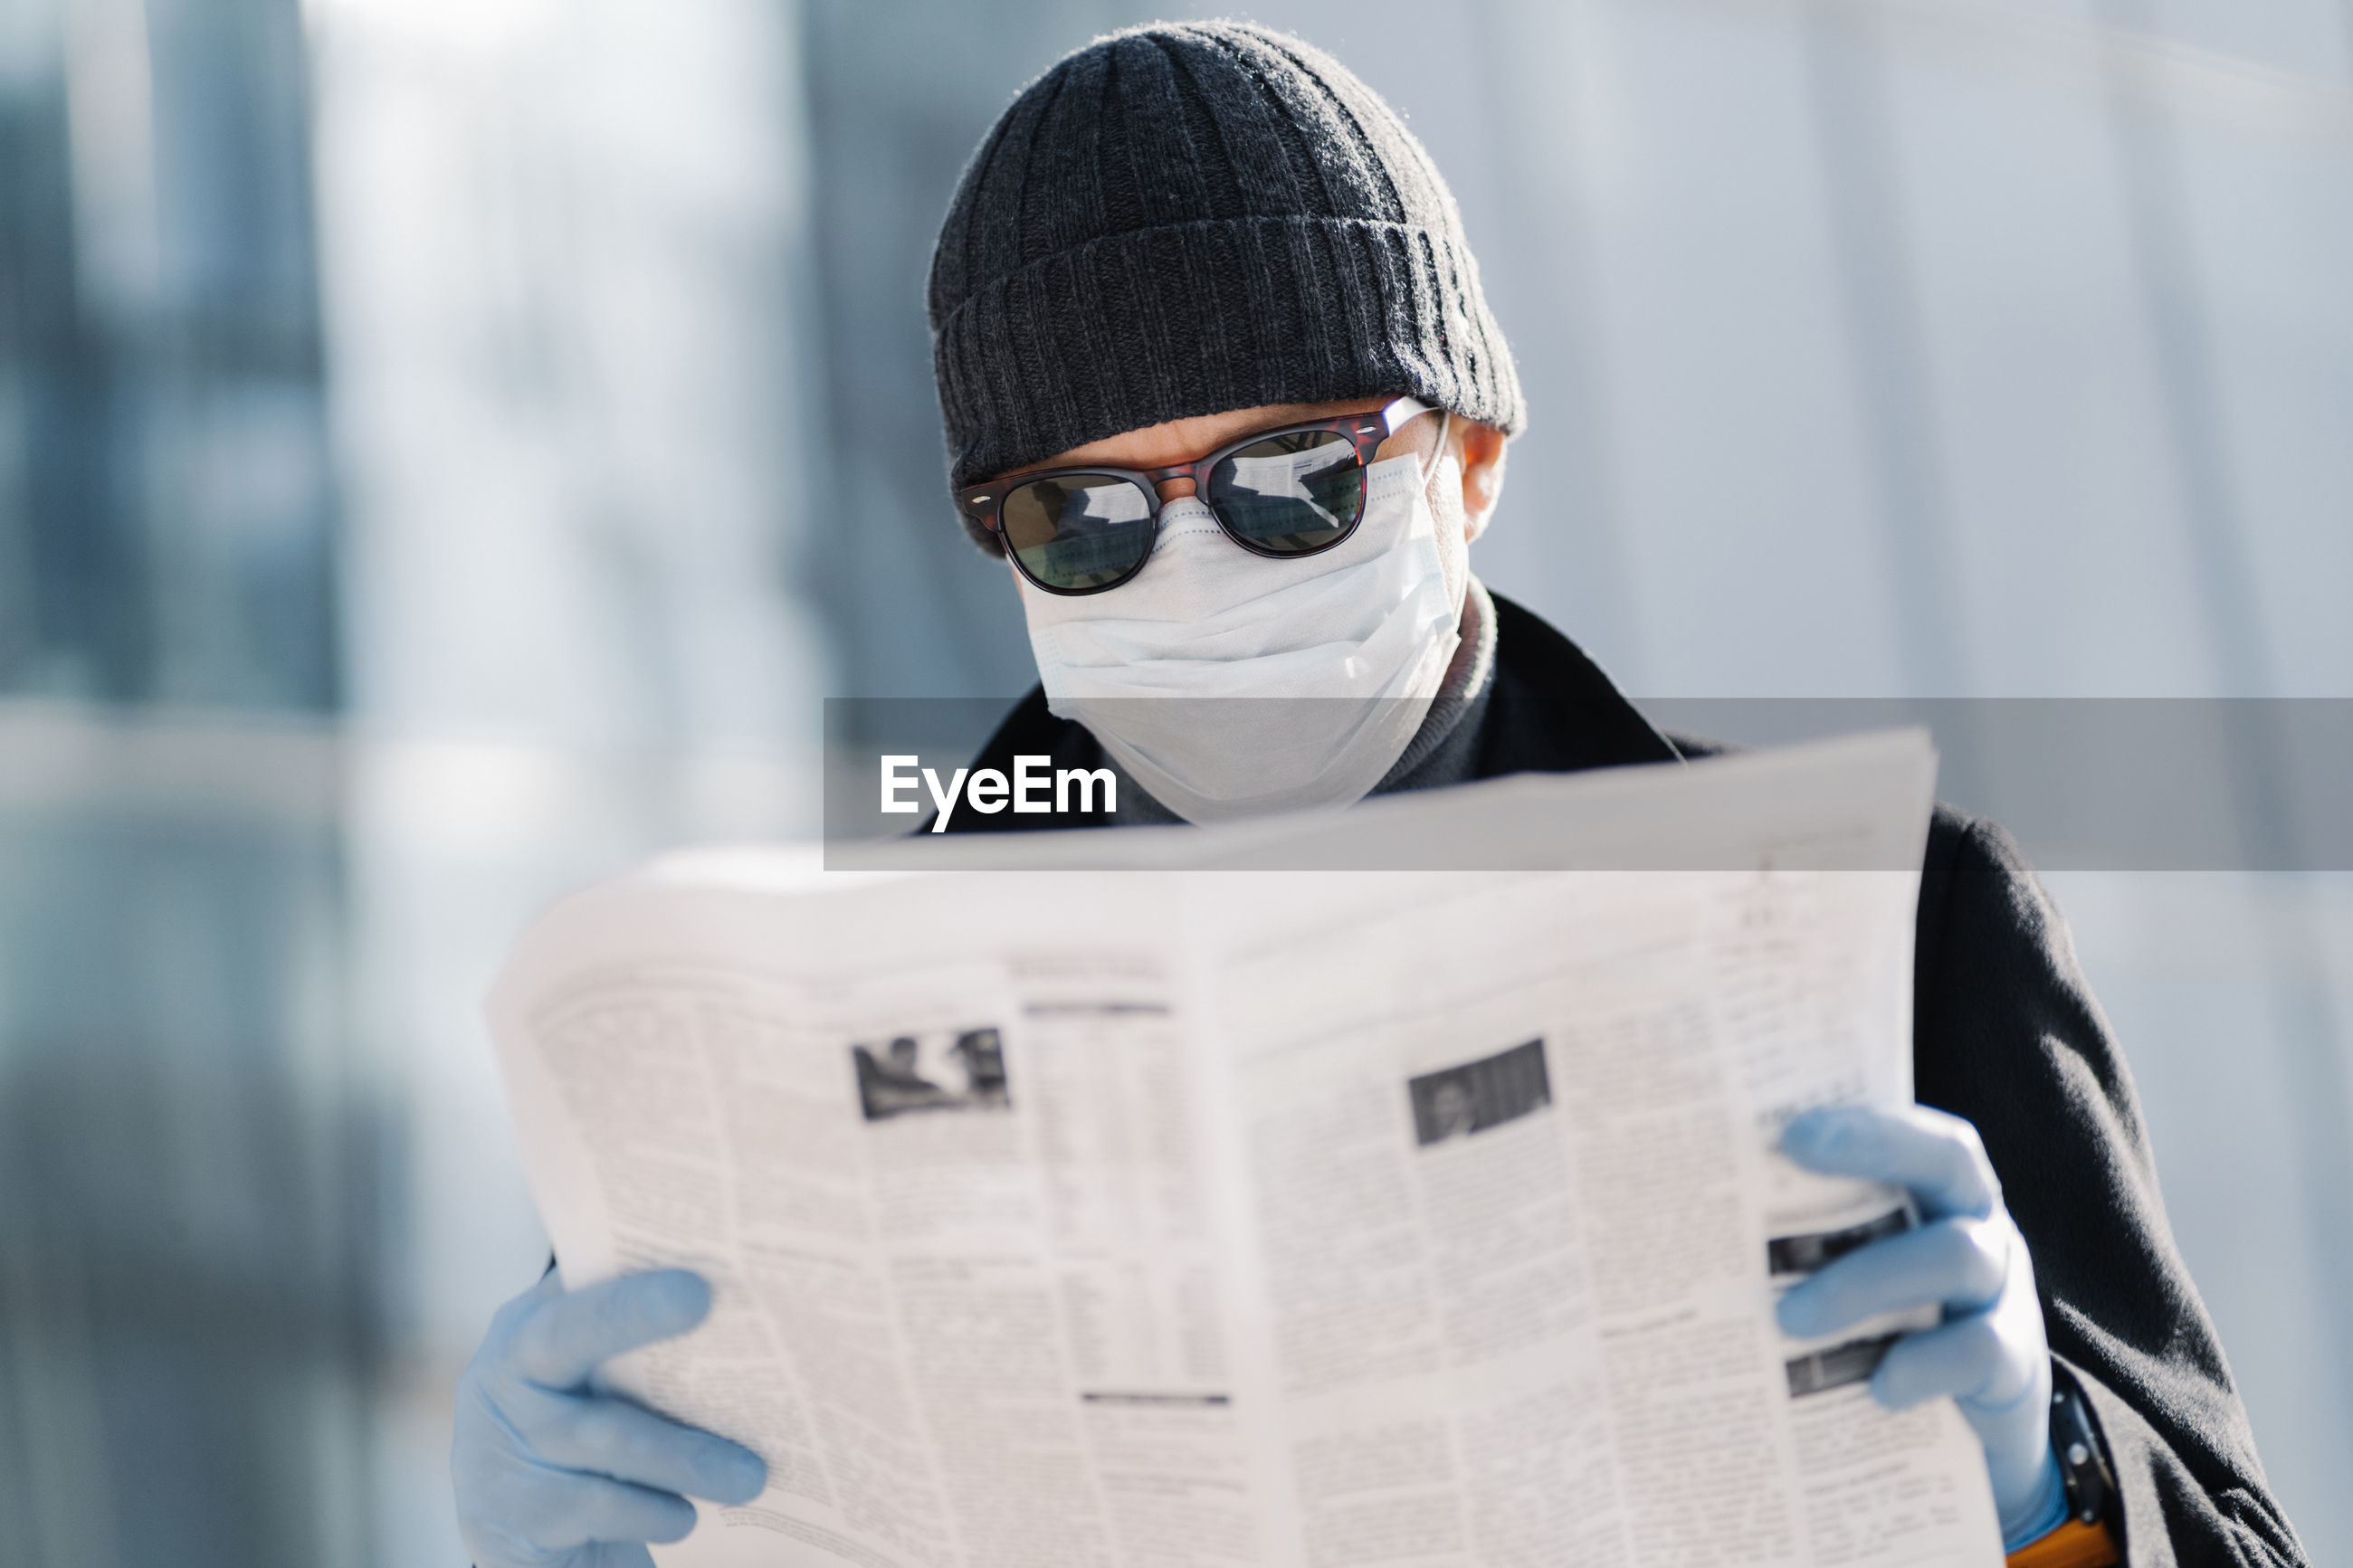 Man wearing mask reading newspaper in city